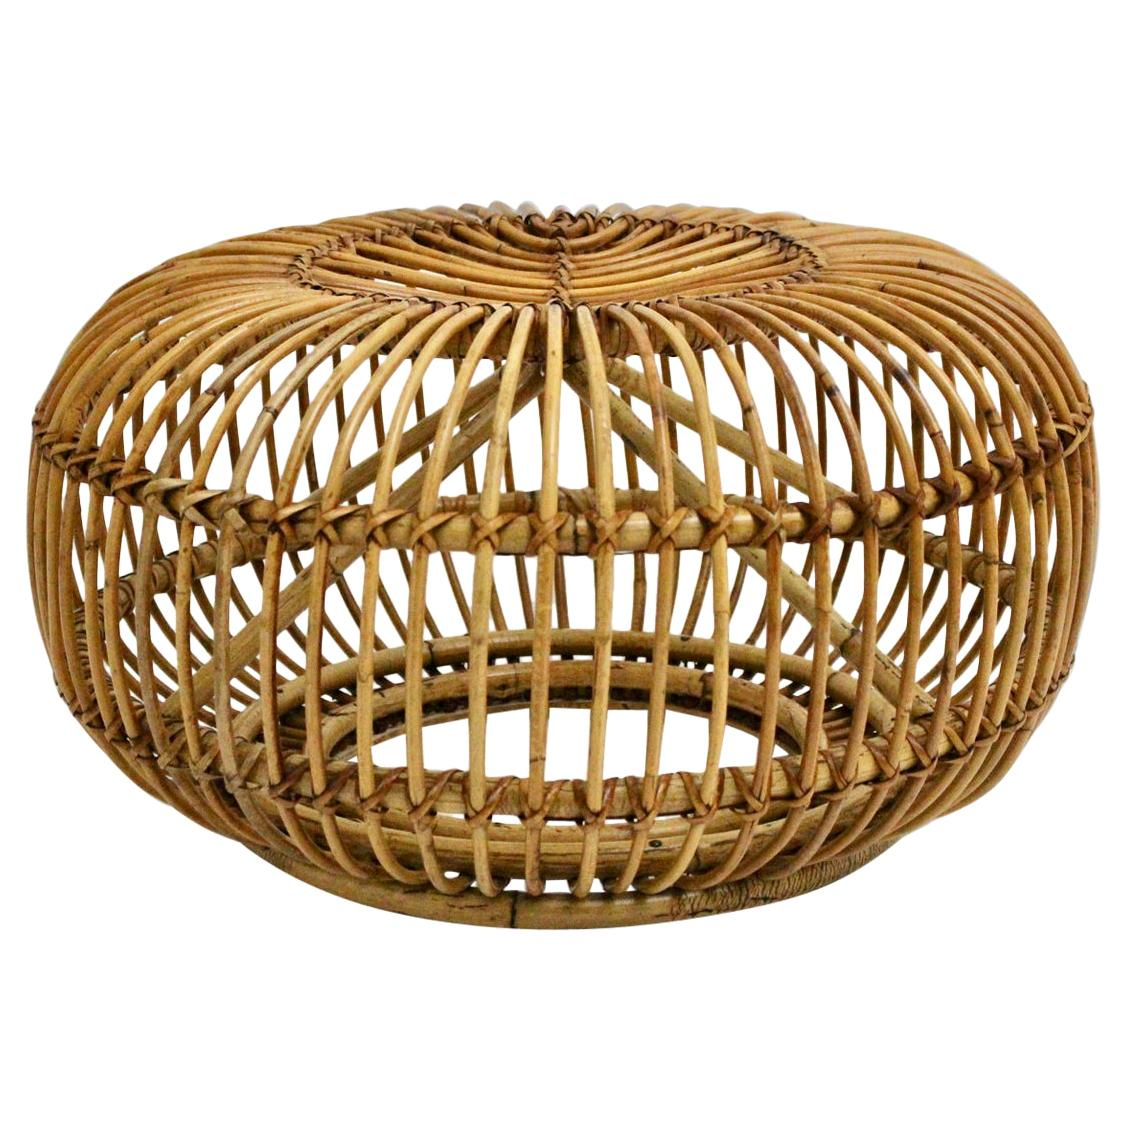 Mid-Century Modern Vintage Rattan Pouf in the Style of Albini 1960s